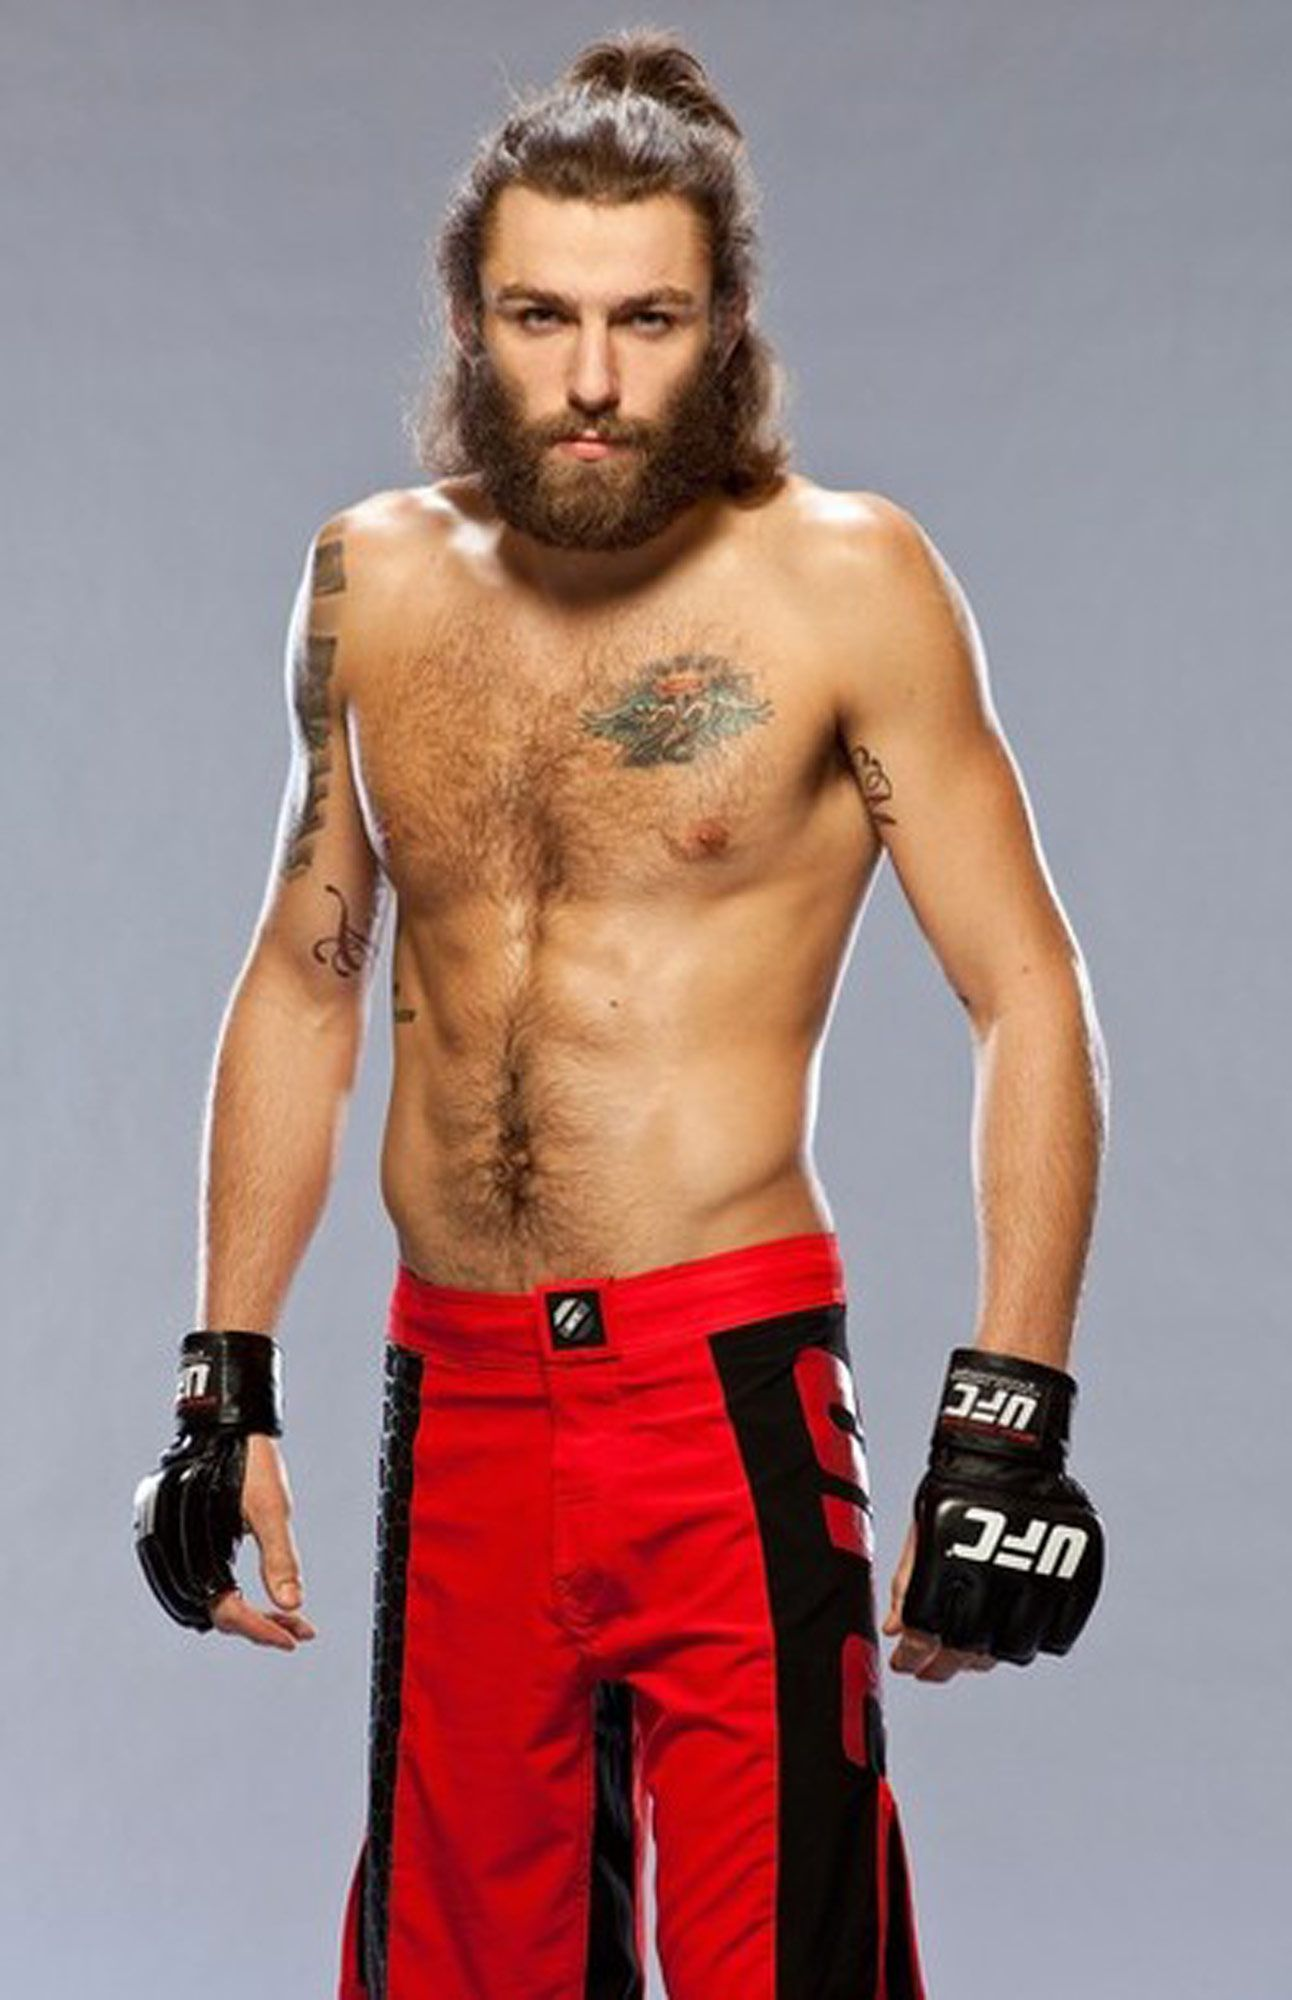 Mma Fighter Mike The Maverick Chiesa Will Be Appearing For A Meet